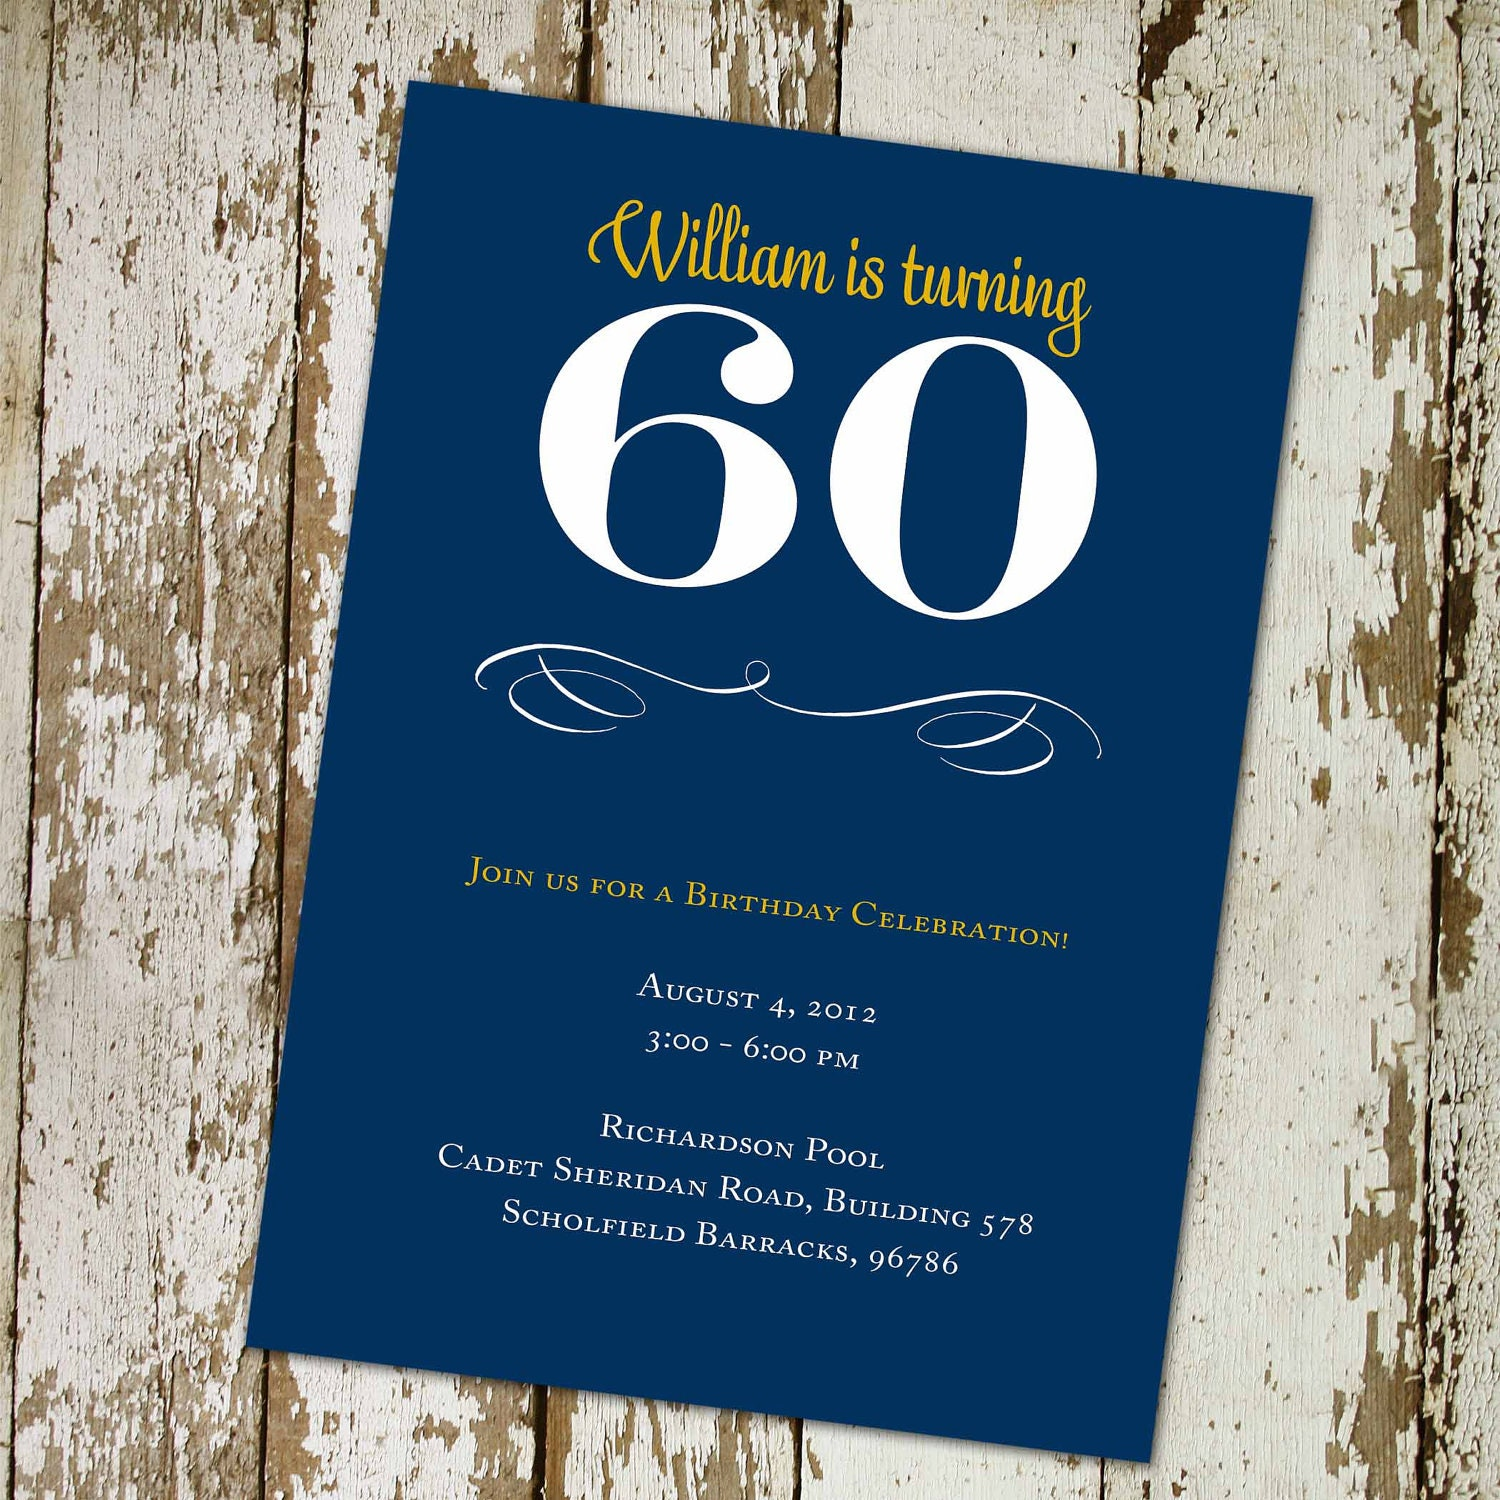 60th Birthday Invitations Memorial Announcement 40th Man Adults